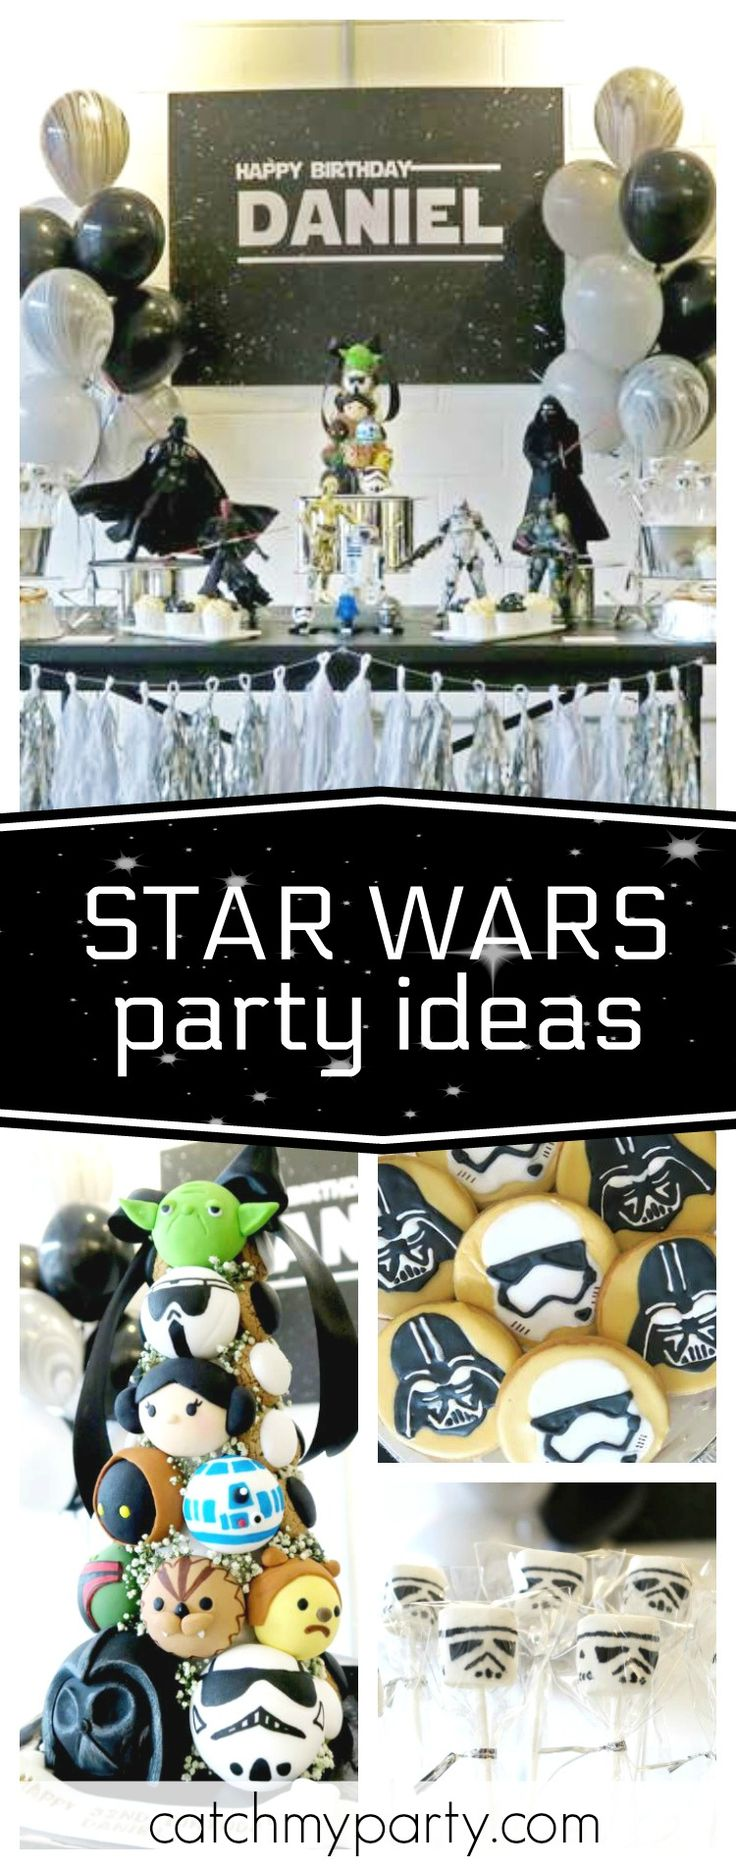 Check out this awesome Star Wars birthday party! Love that it's all in black & white!! See more party ideas and share yours at CatchMyParty.com